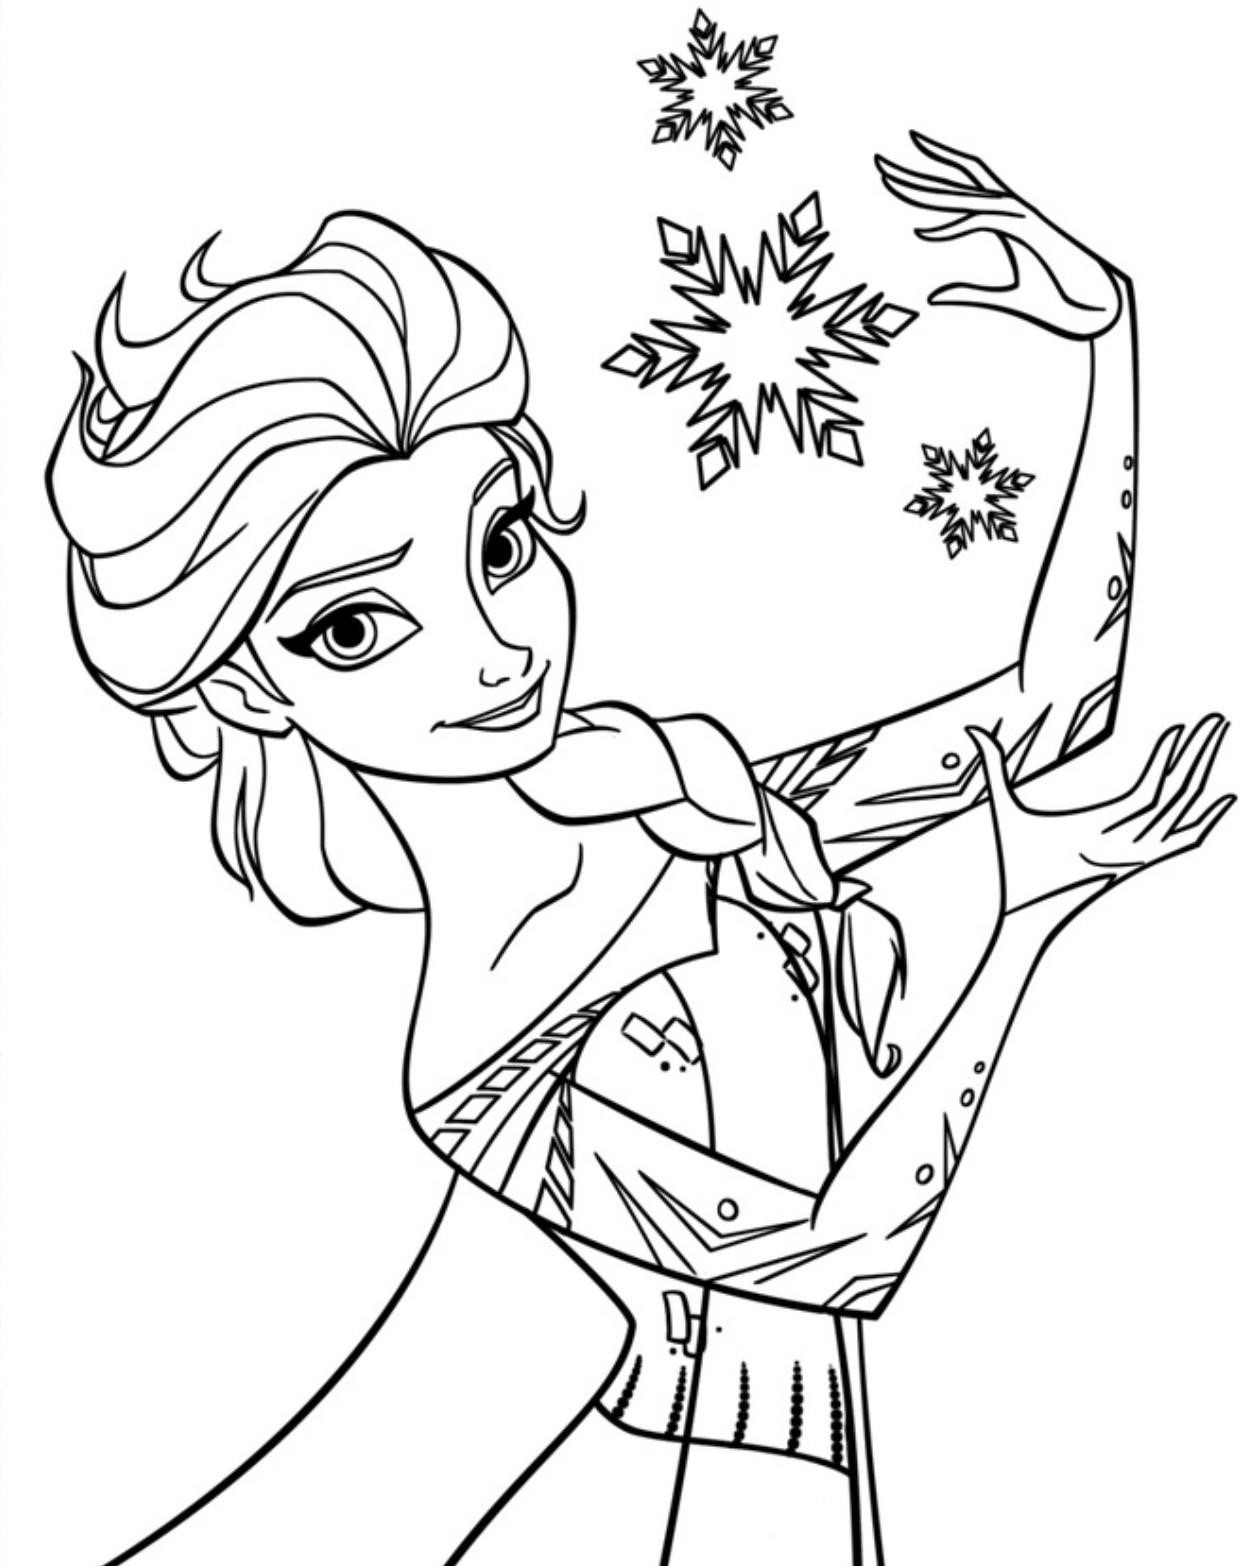 Elsa-Coloring-Pages